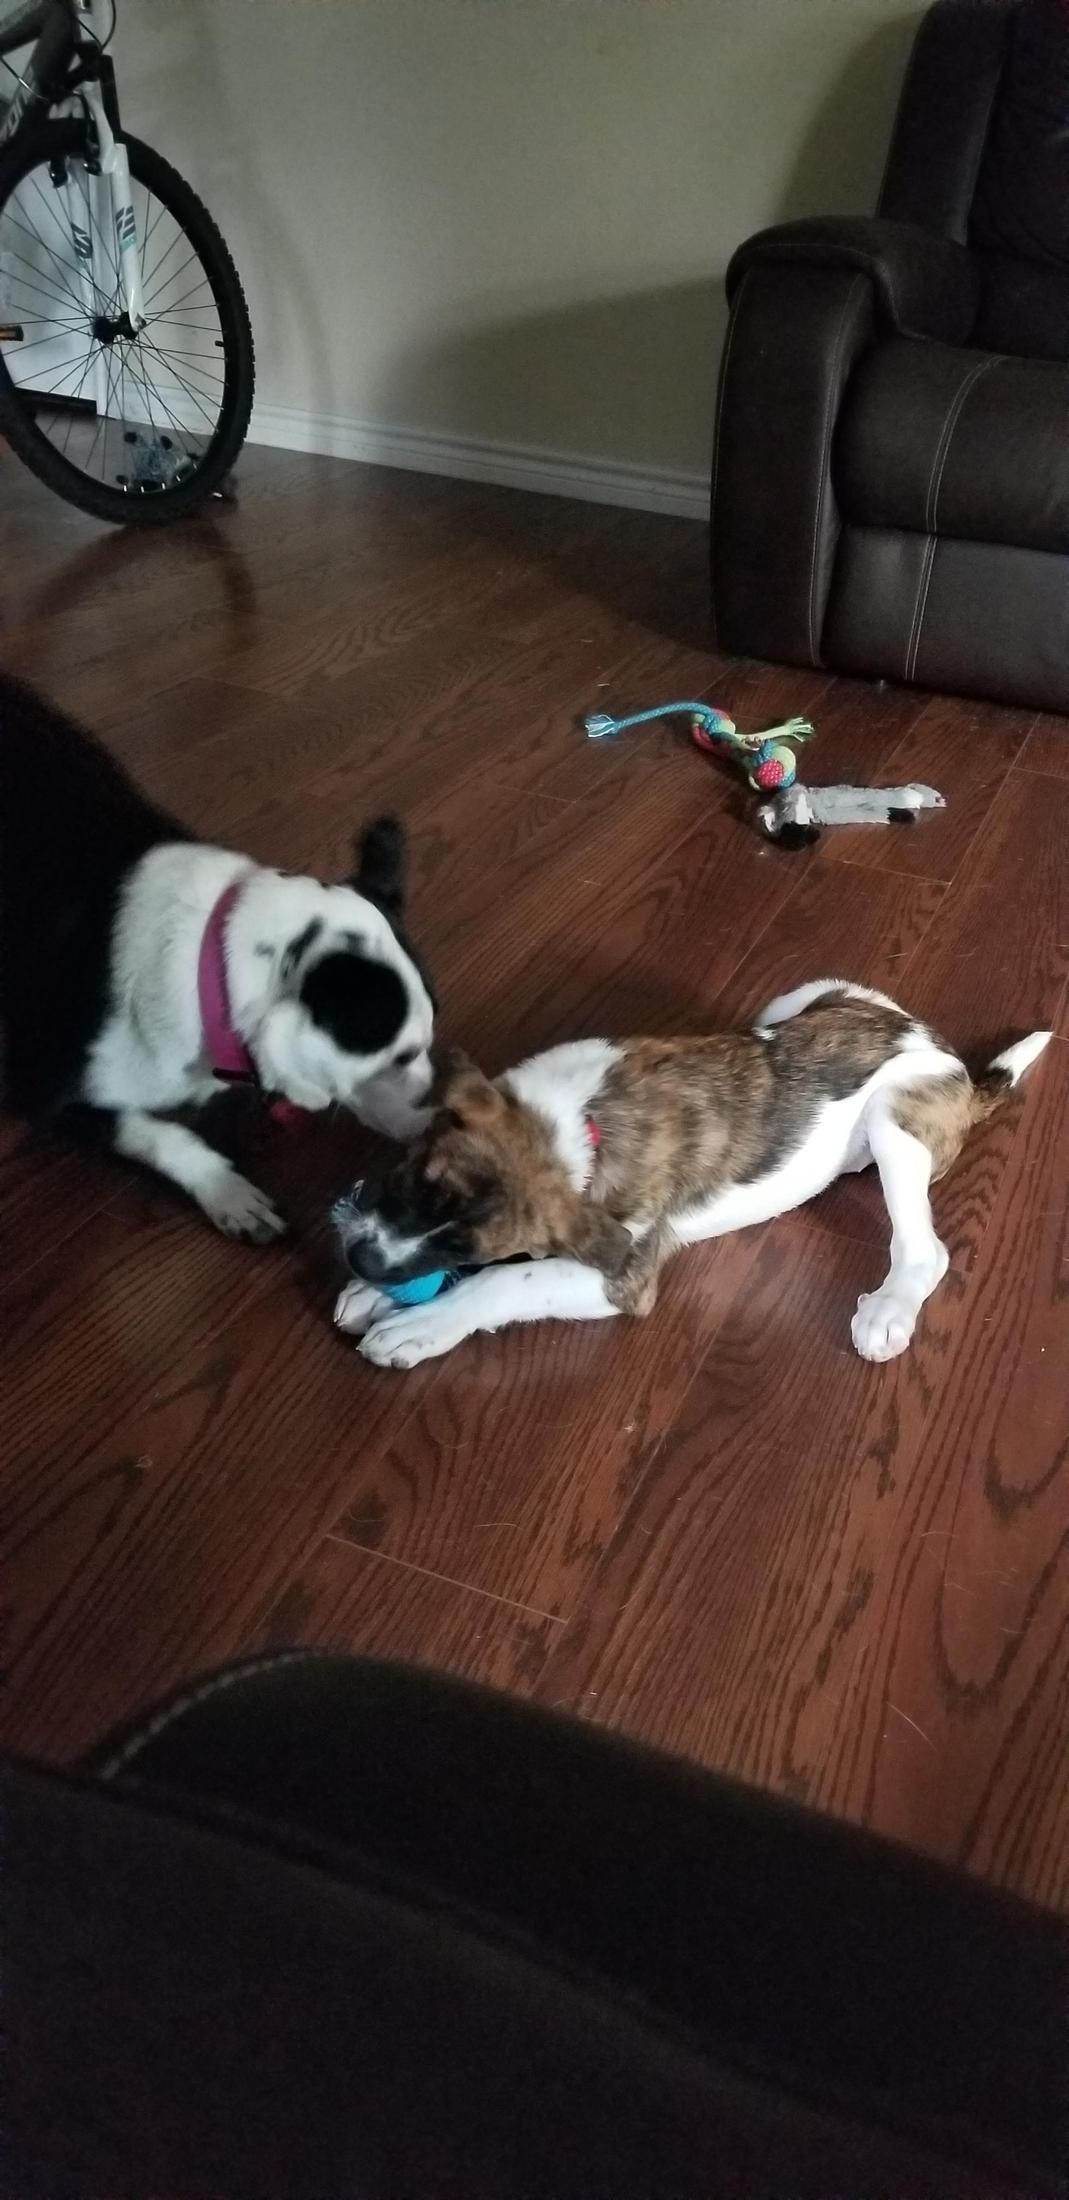 A black and white adult dog and a brown and white puppy playing together.